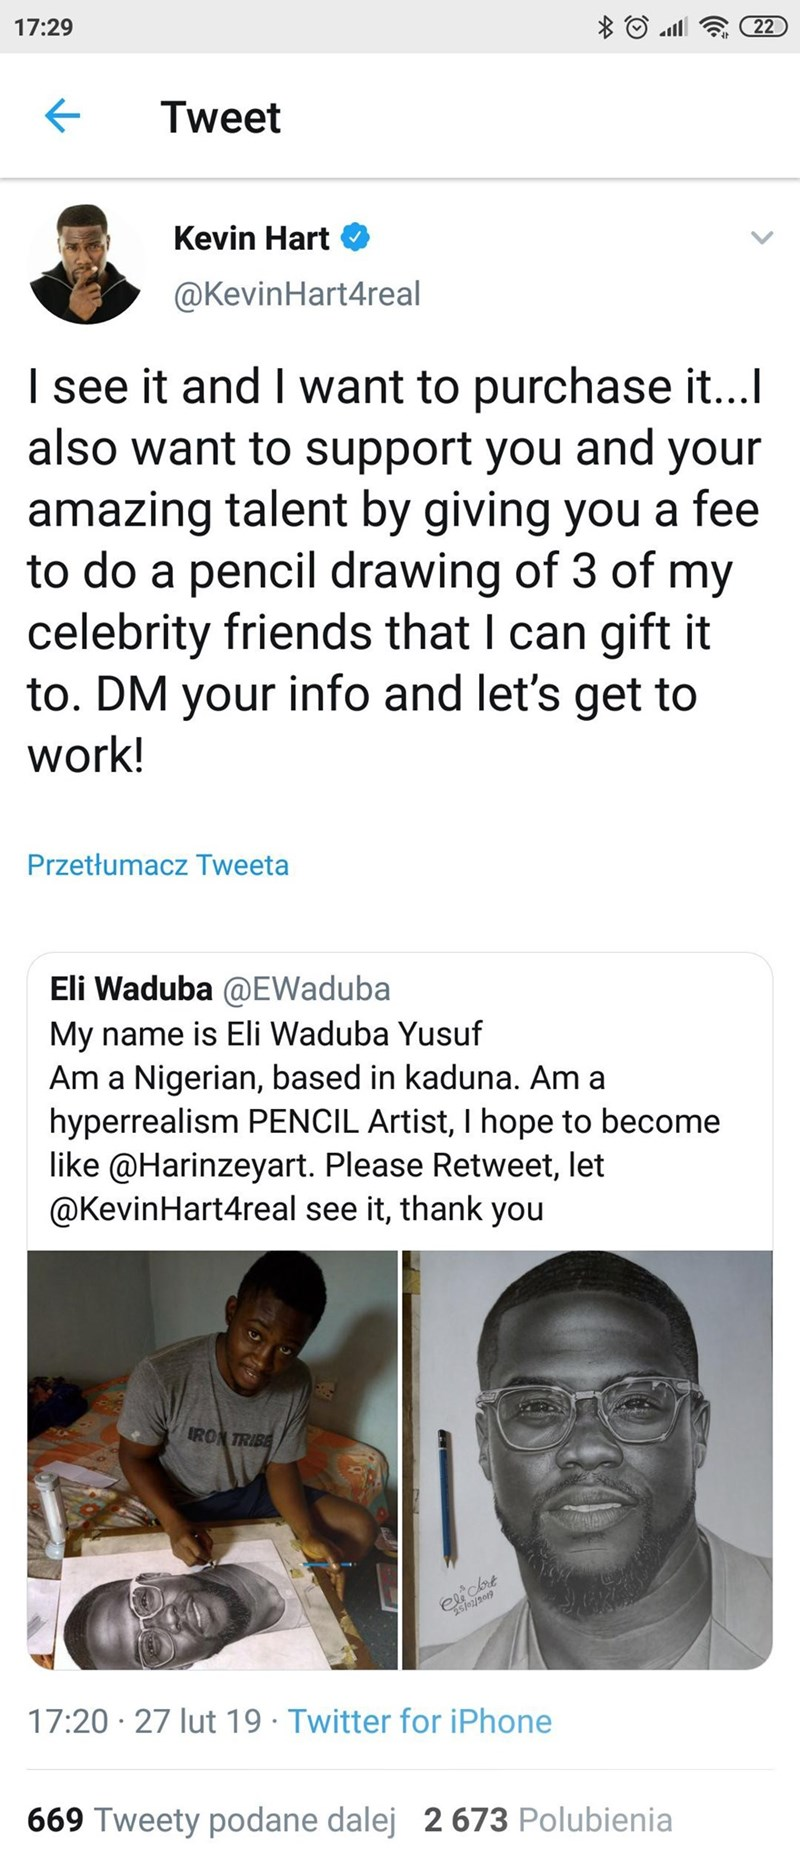 Text - 17:29 all 22 Tweet Kevin Hart @KevinHart4real I see it and I want to purchase it...I also want to support you and your amazing talent by giving you a fee to do a pencil drawing of 3 of my celebrity friends that I can gift it to. DM your info and let's get to work! Przetłumacz Tweeta Eli Waduba @EWaduba My name is Eli Waduba Yusuf Am a Nigerian, based in kaduna. Am a hyperrealism PENCIL Artist, I hope to become like @Harinzeyart. Please Retweet, let @KevinHart4real see it, thank you IRON T